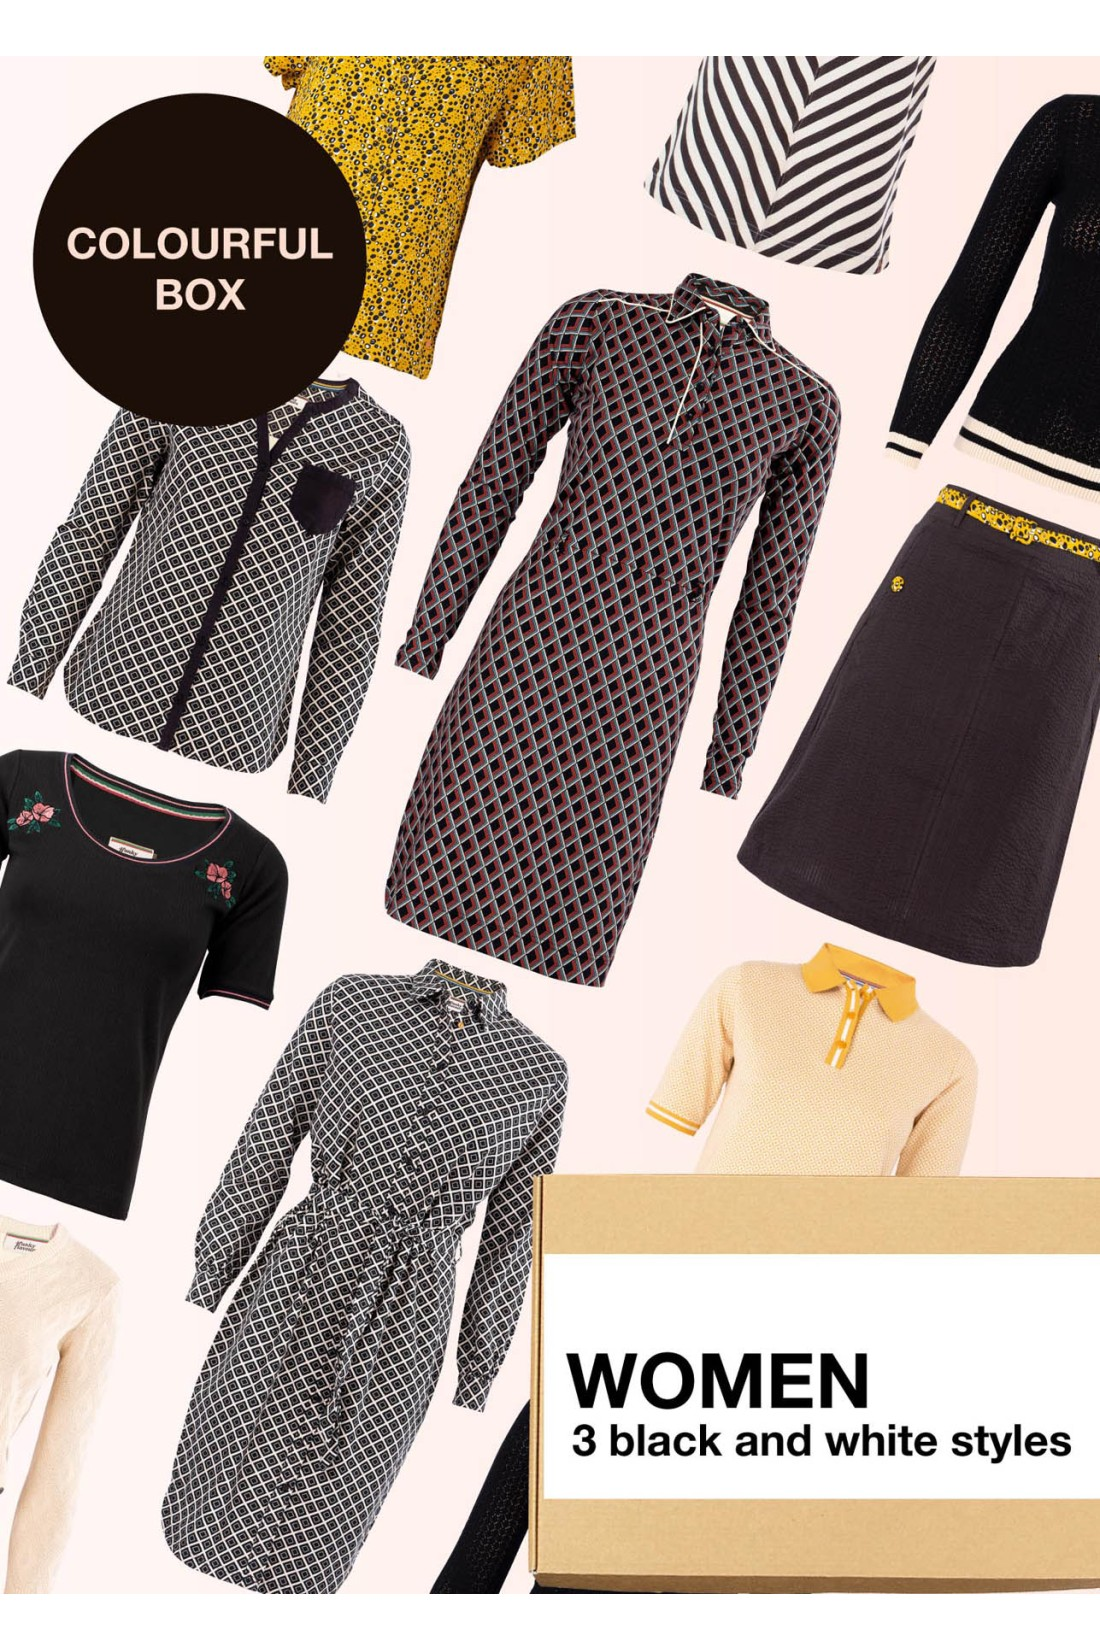 Surprise Box Women - Black And White Box 3 Styles With Black And White In It